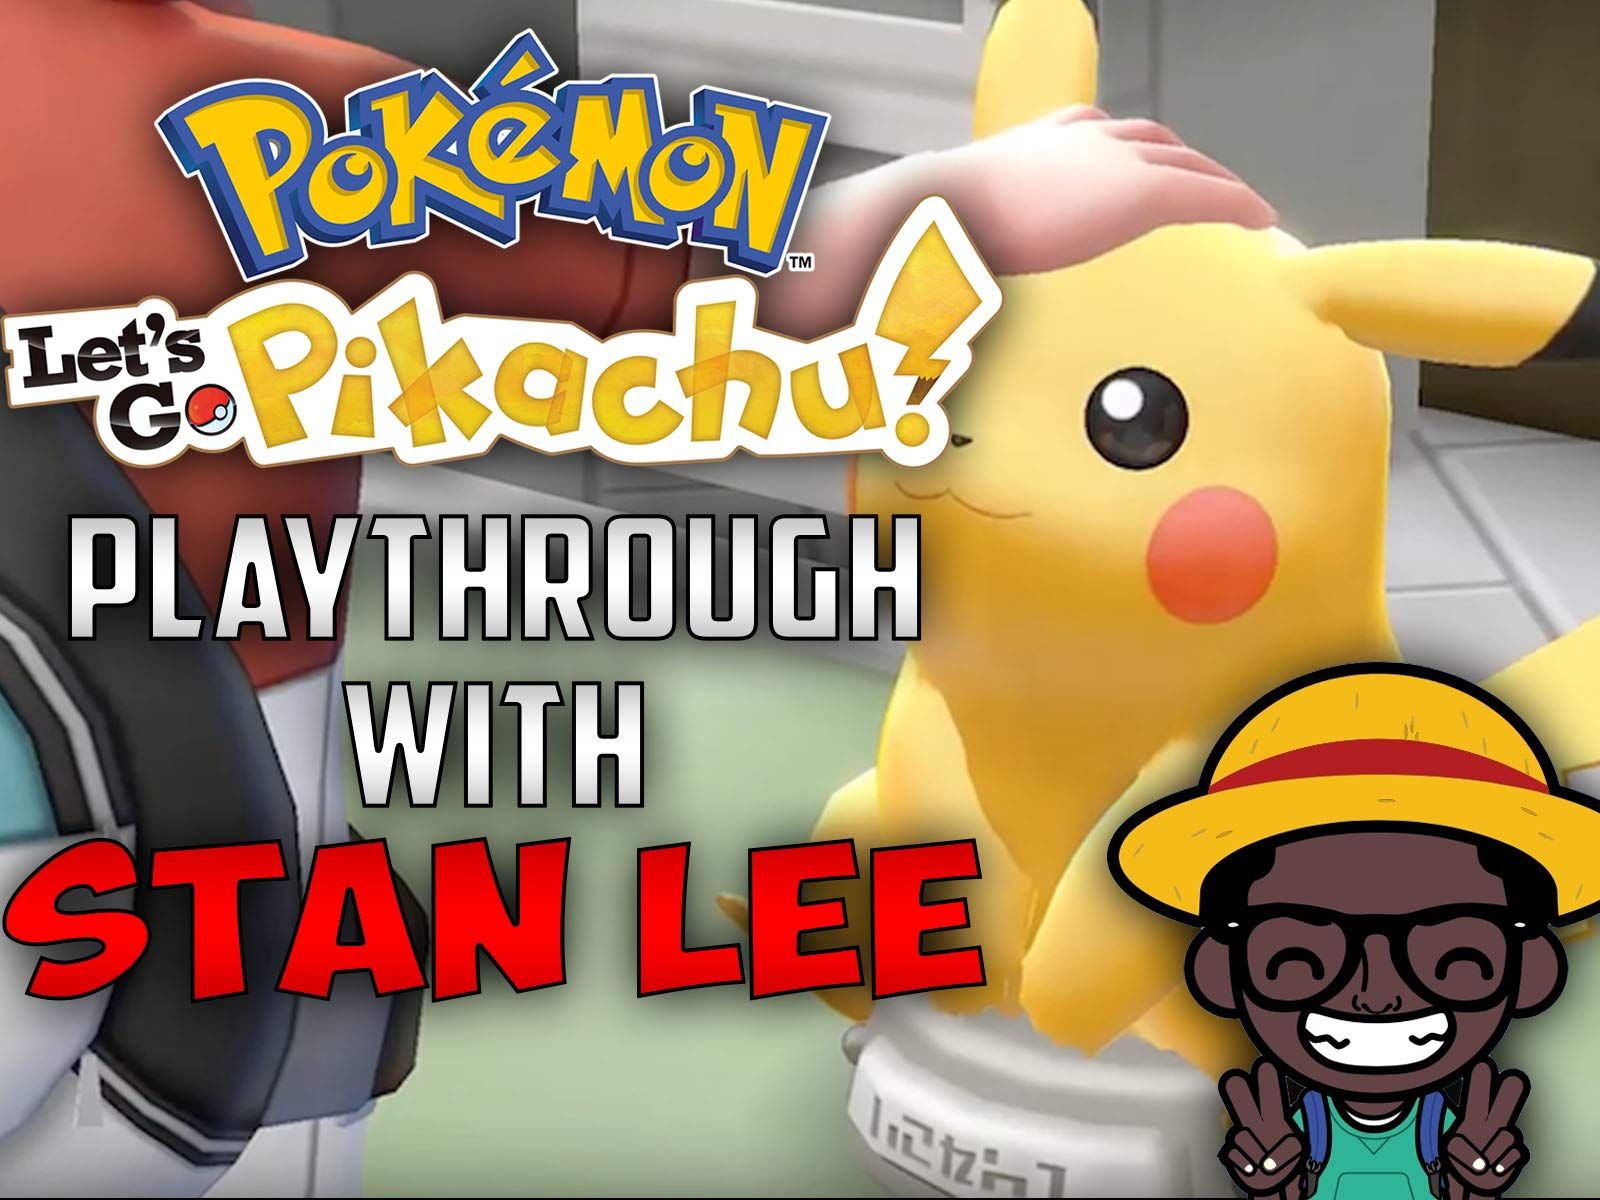 Pokemon Let's Go Pikachu Playthrough With Stan Lee on Amazon Prime Instant Video UK